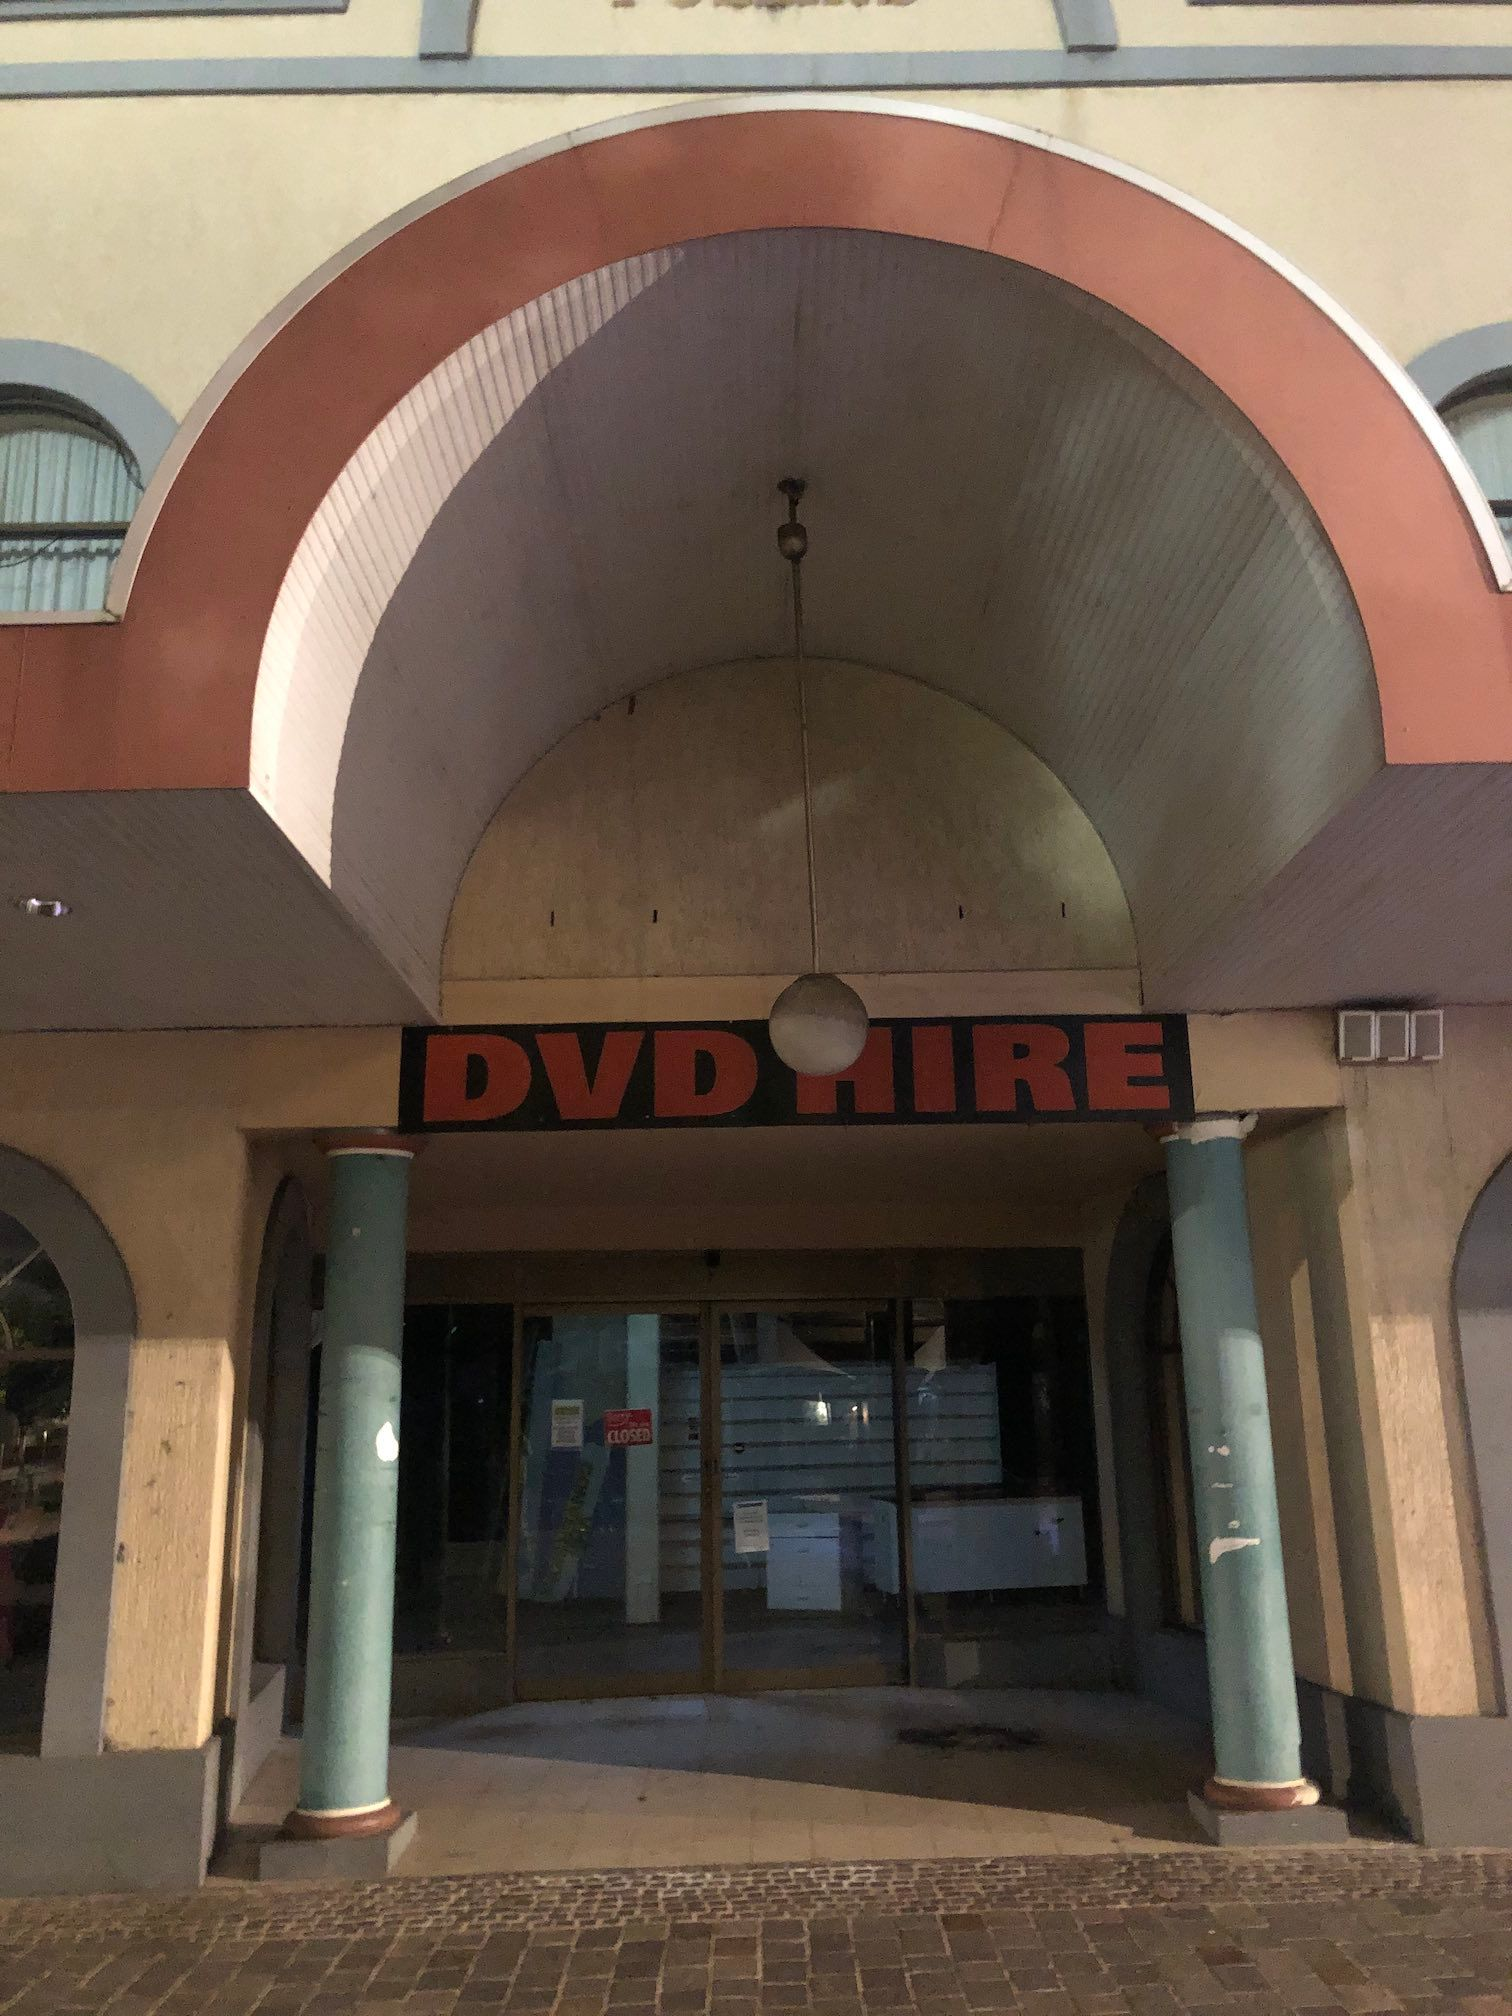 Ex-DVD Hire shop, now for lease, with columns and oversized arch above entrance.